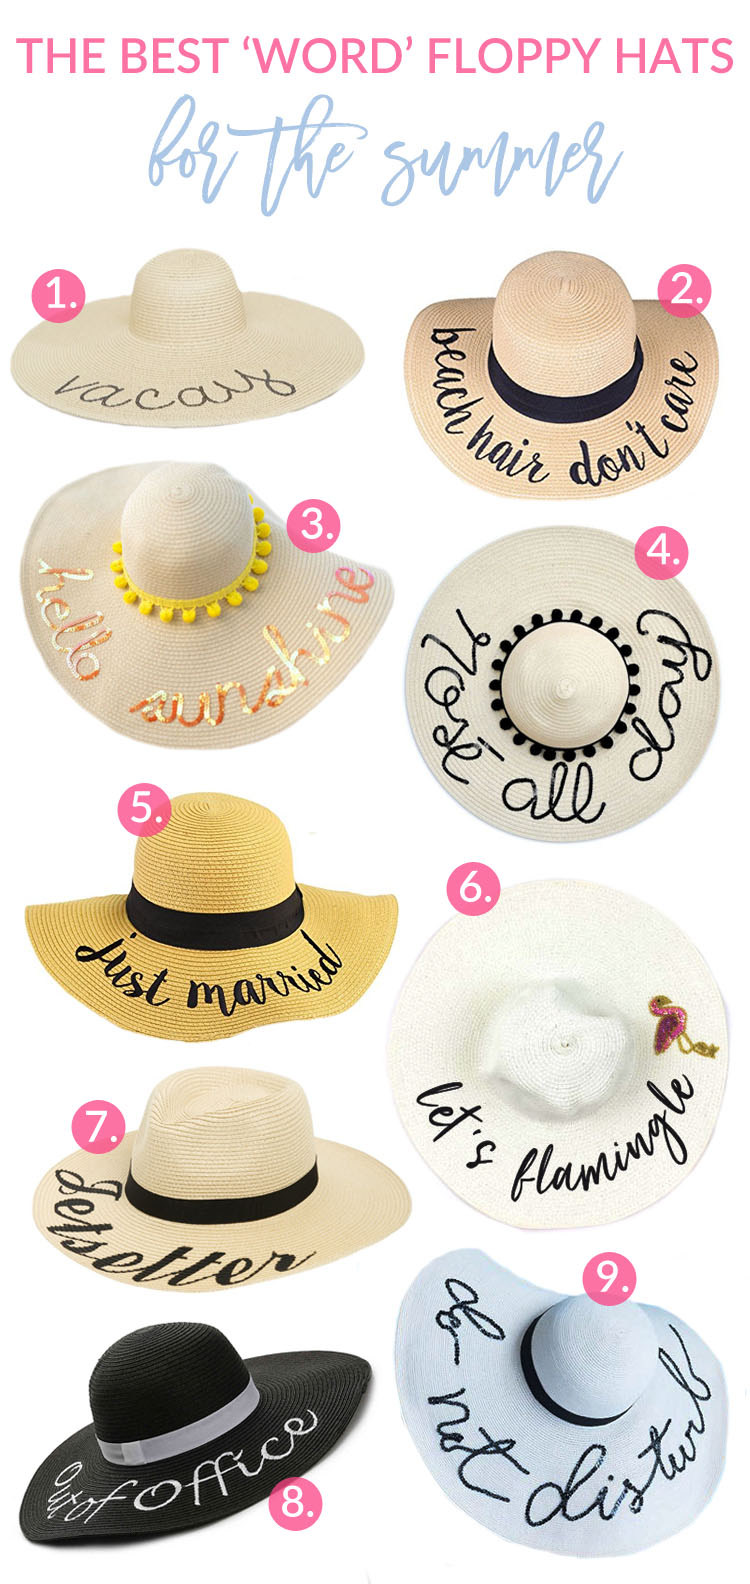 The Best Word Floppy Hats for This Summer  d86198394c7